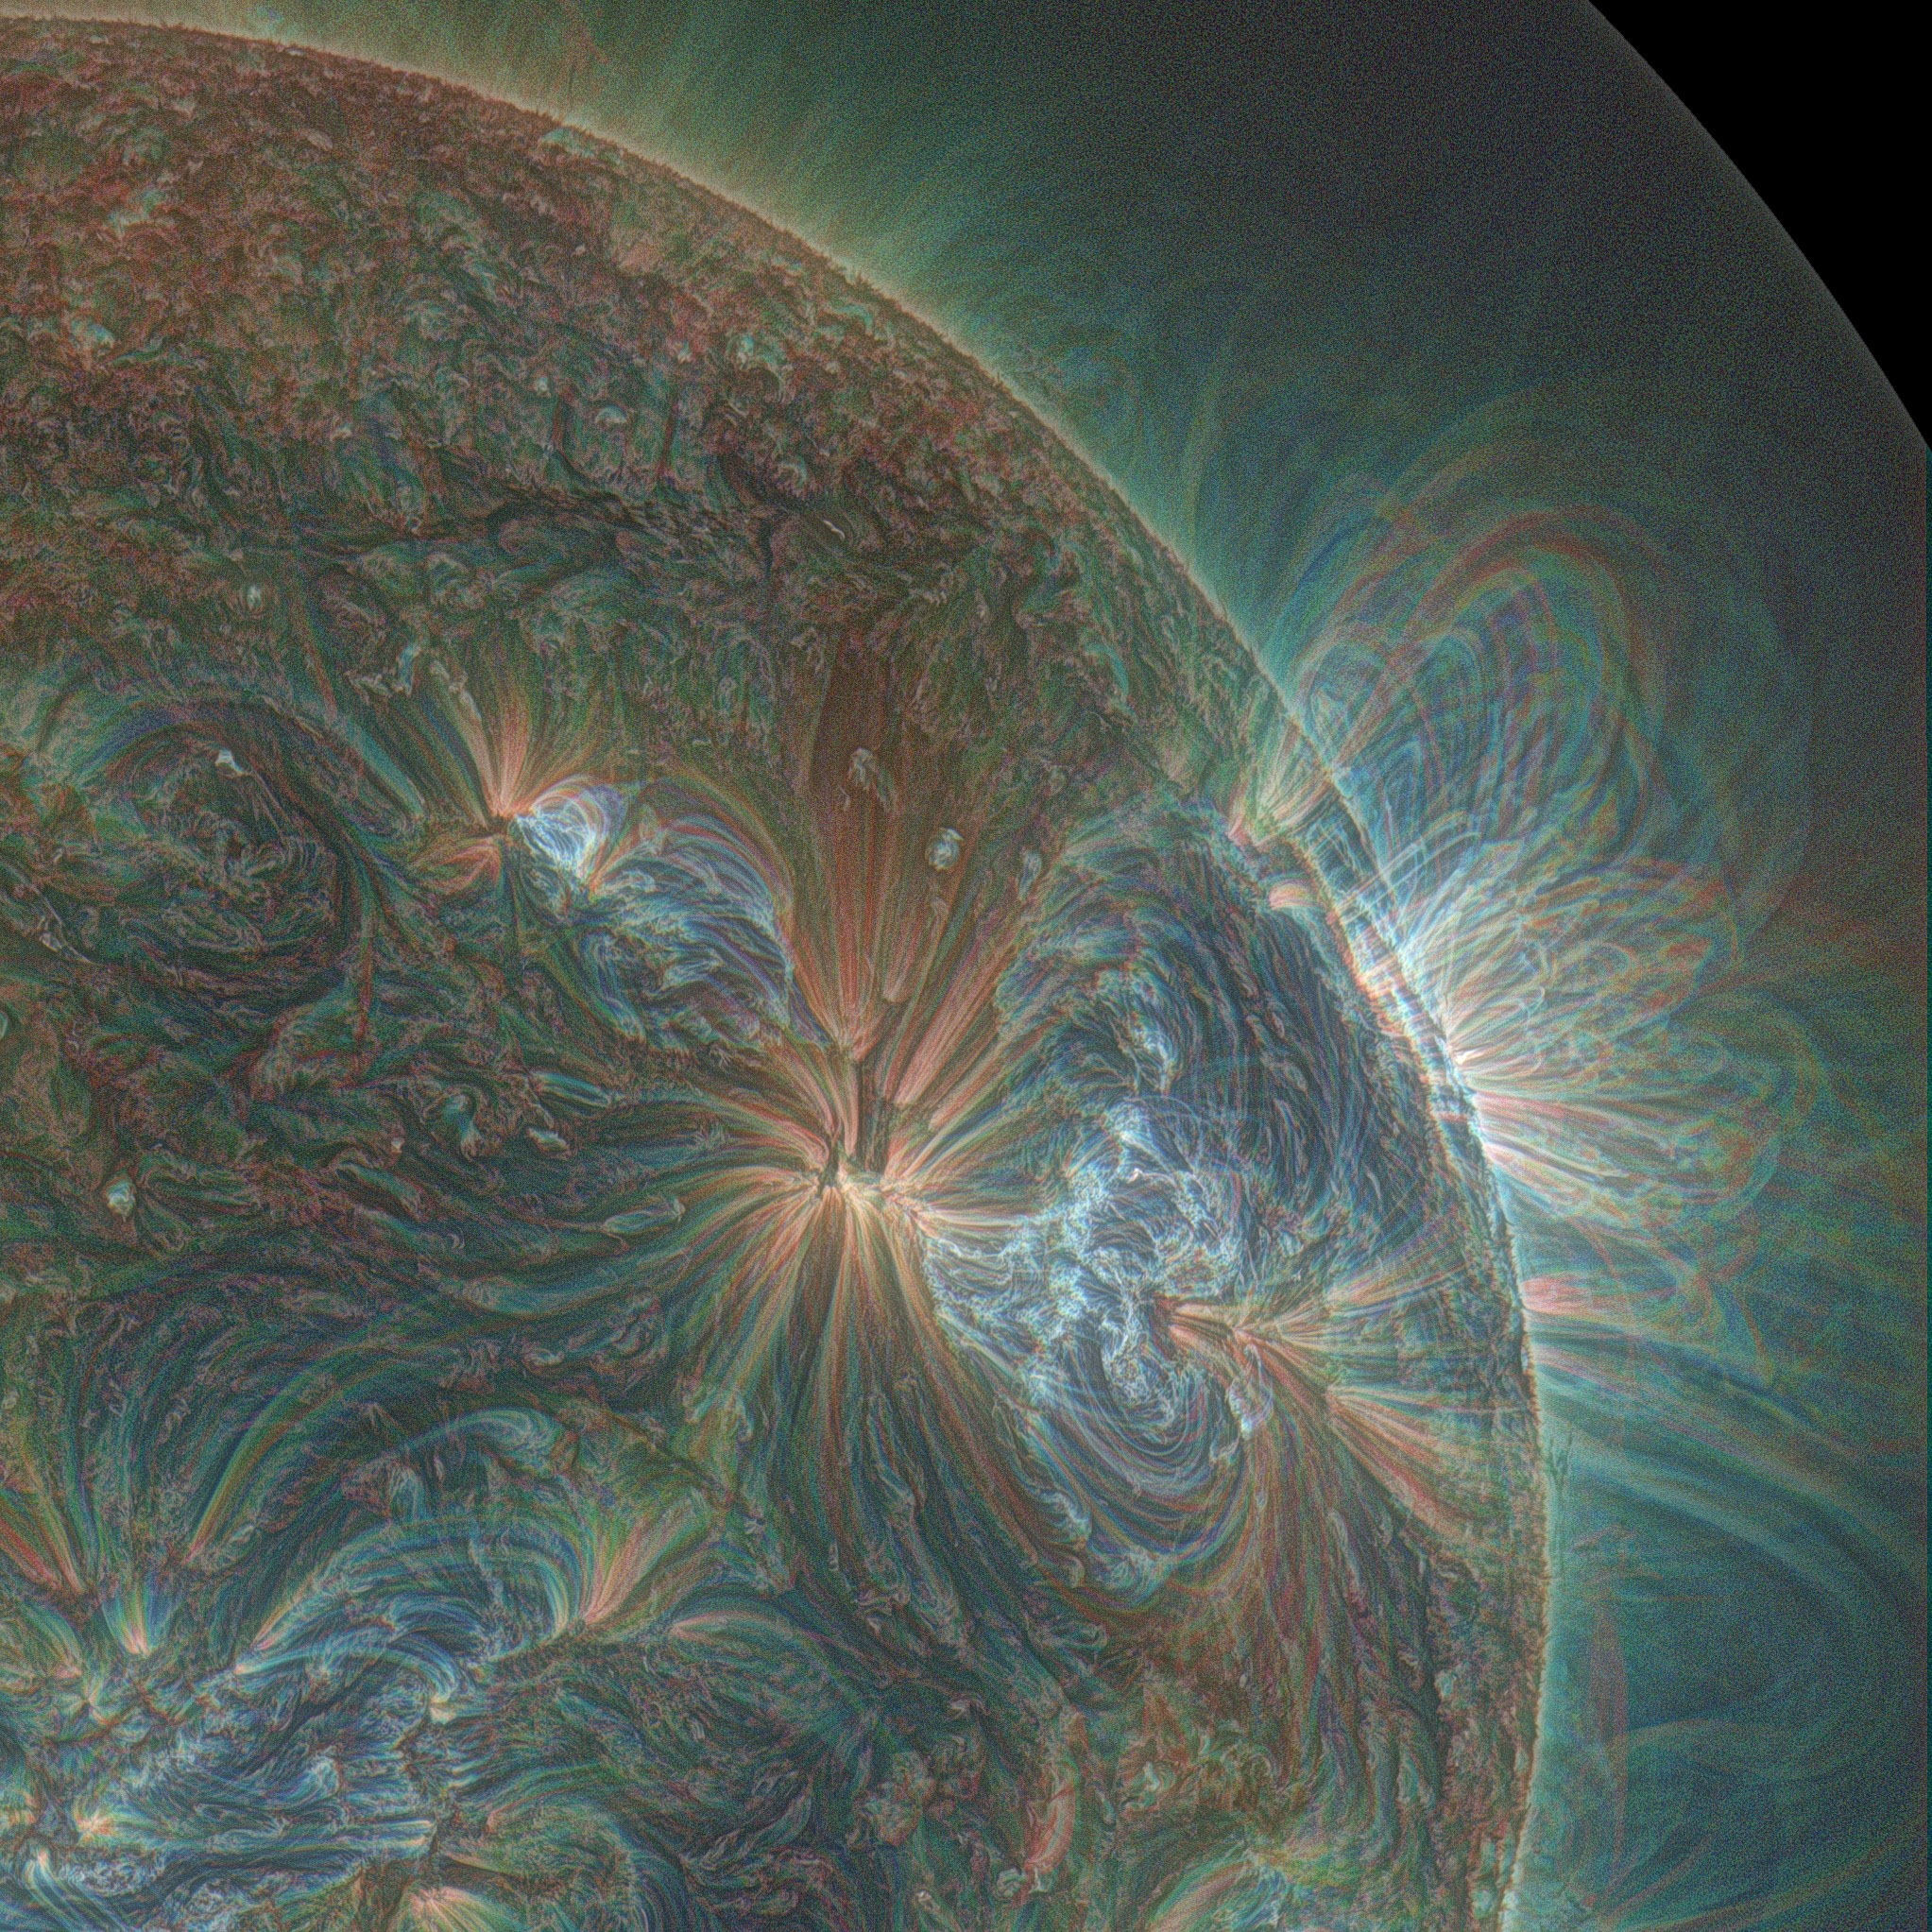 Amazing Solar Flare Eruptions Captured by NASA's Solar Dynamics Observatory